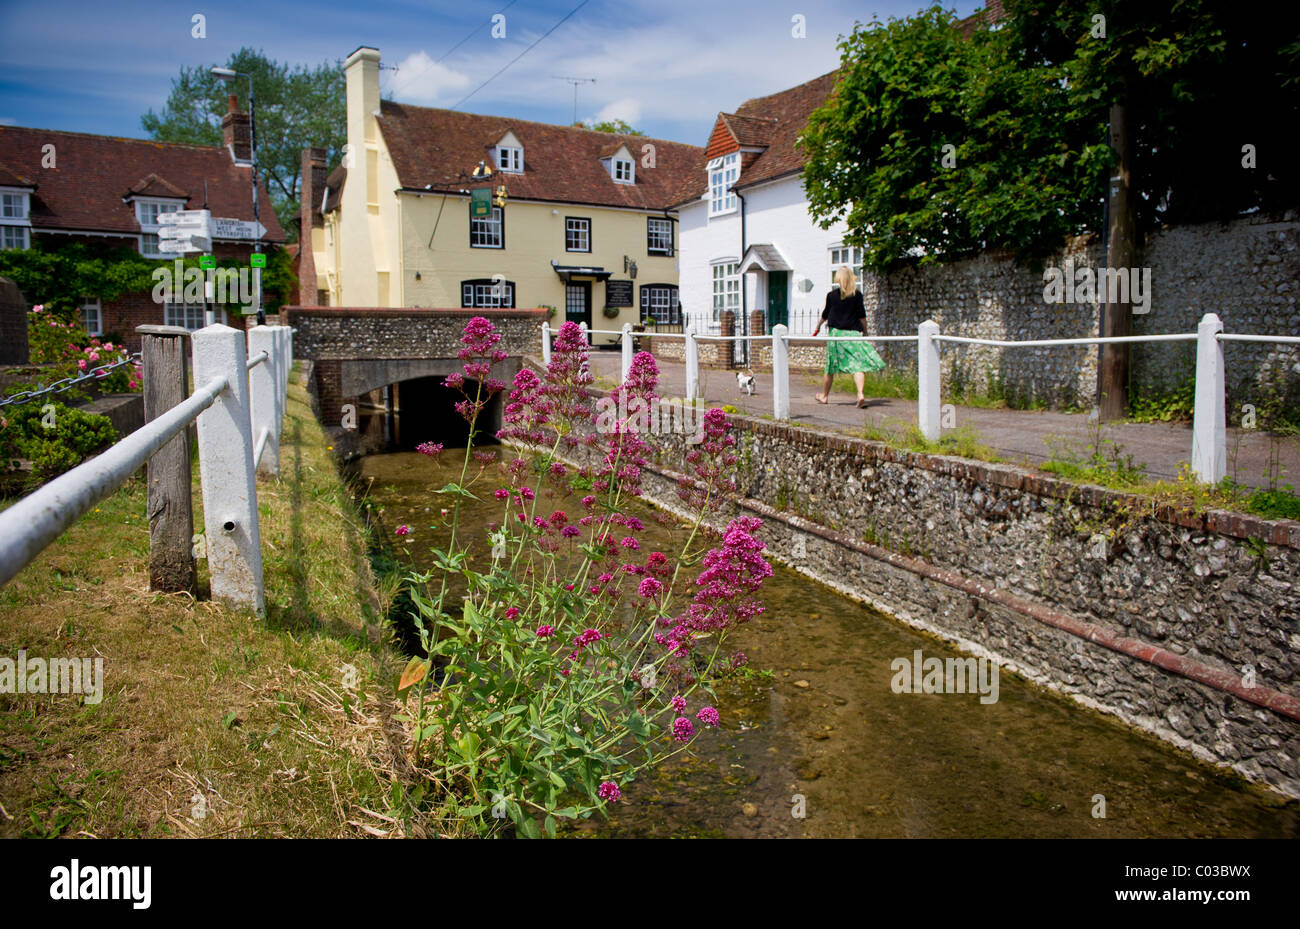 The village of East Meon located in the meon Valley Hampshire , pictured at the top of the Meon river is the Ye - Stock Image